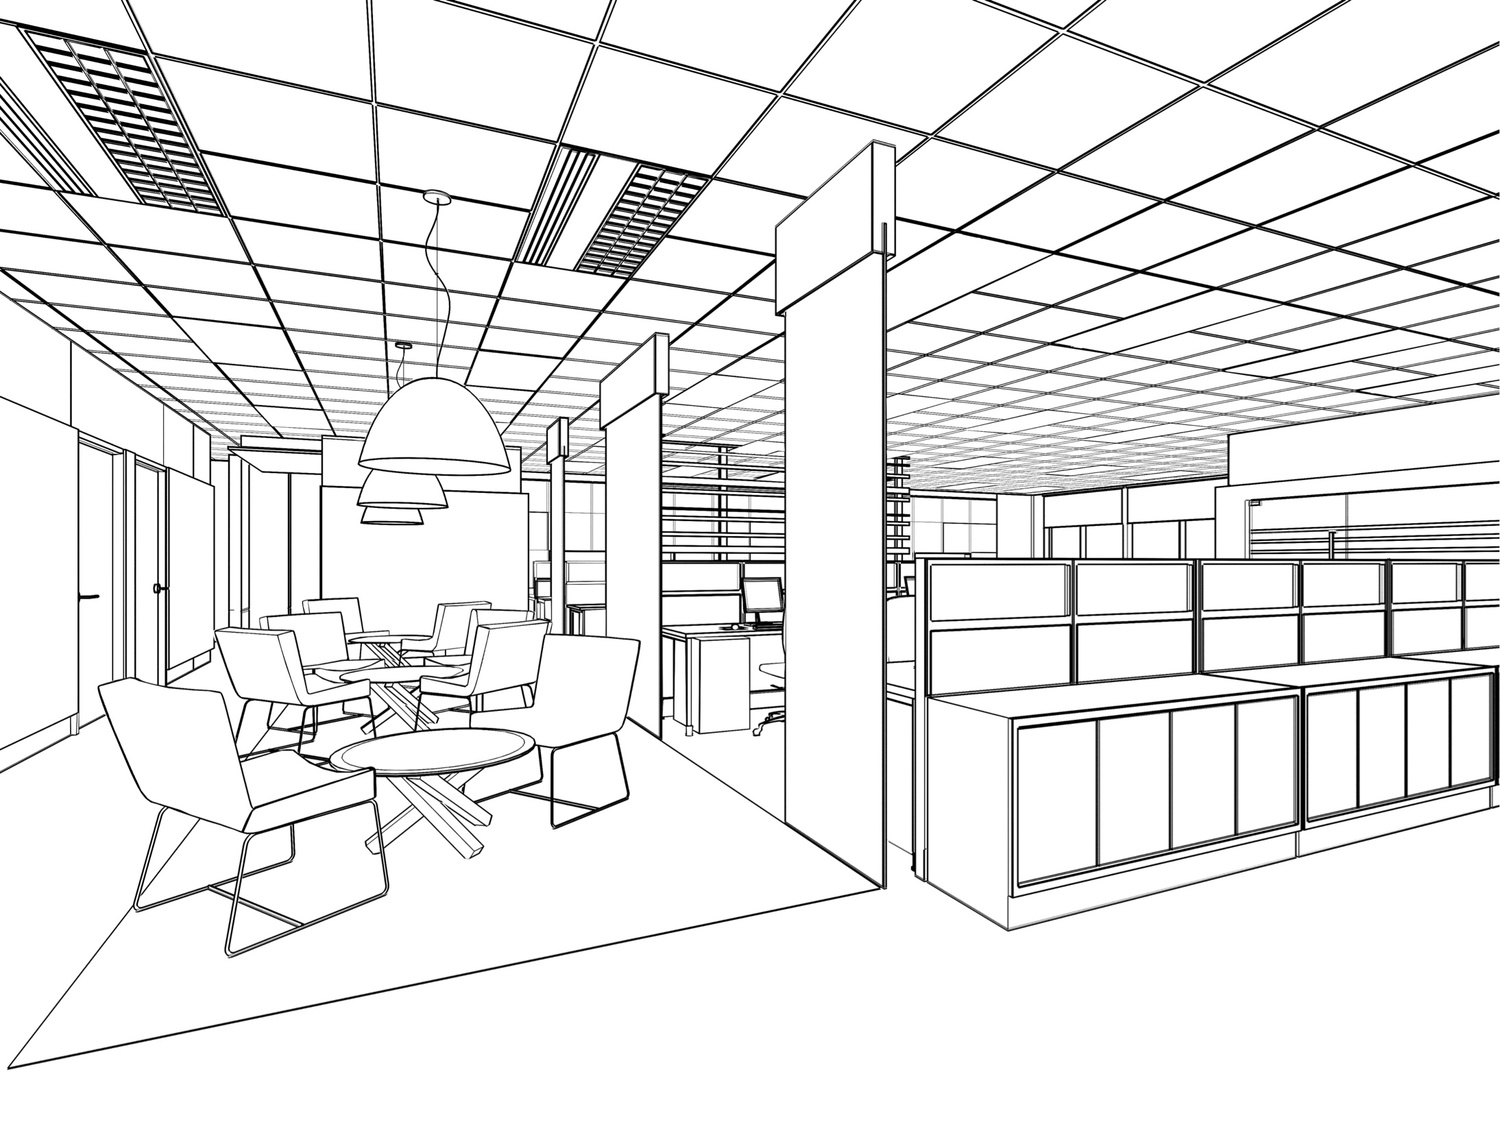 Drawn office office space Planning jpg Drawn — Line